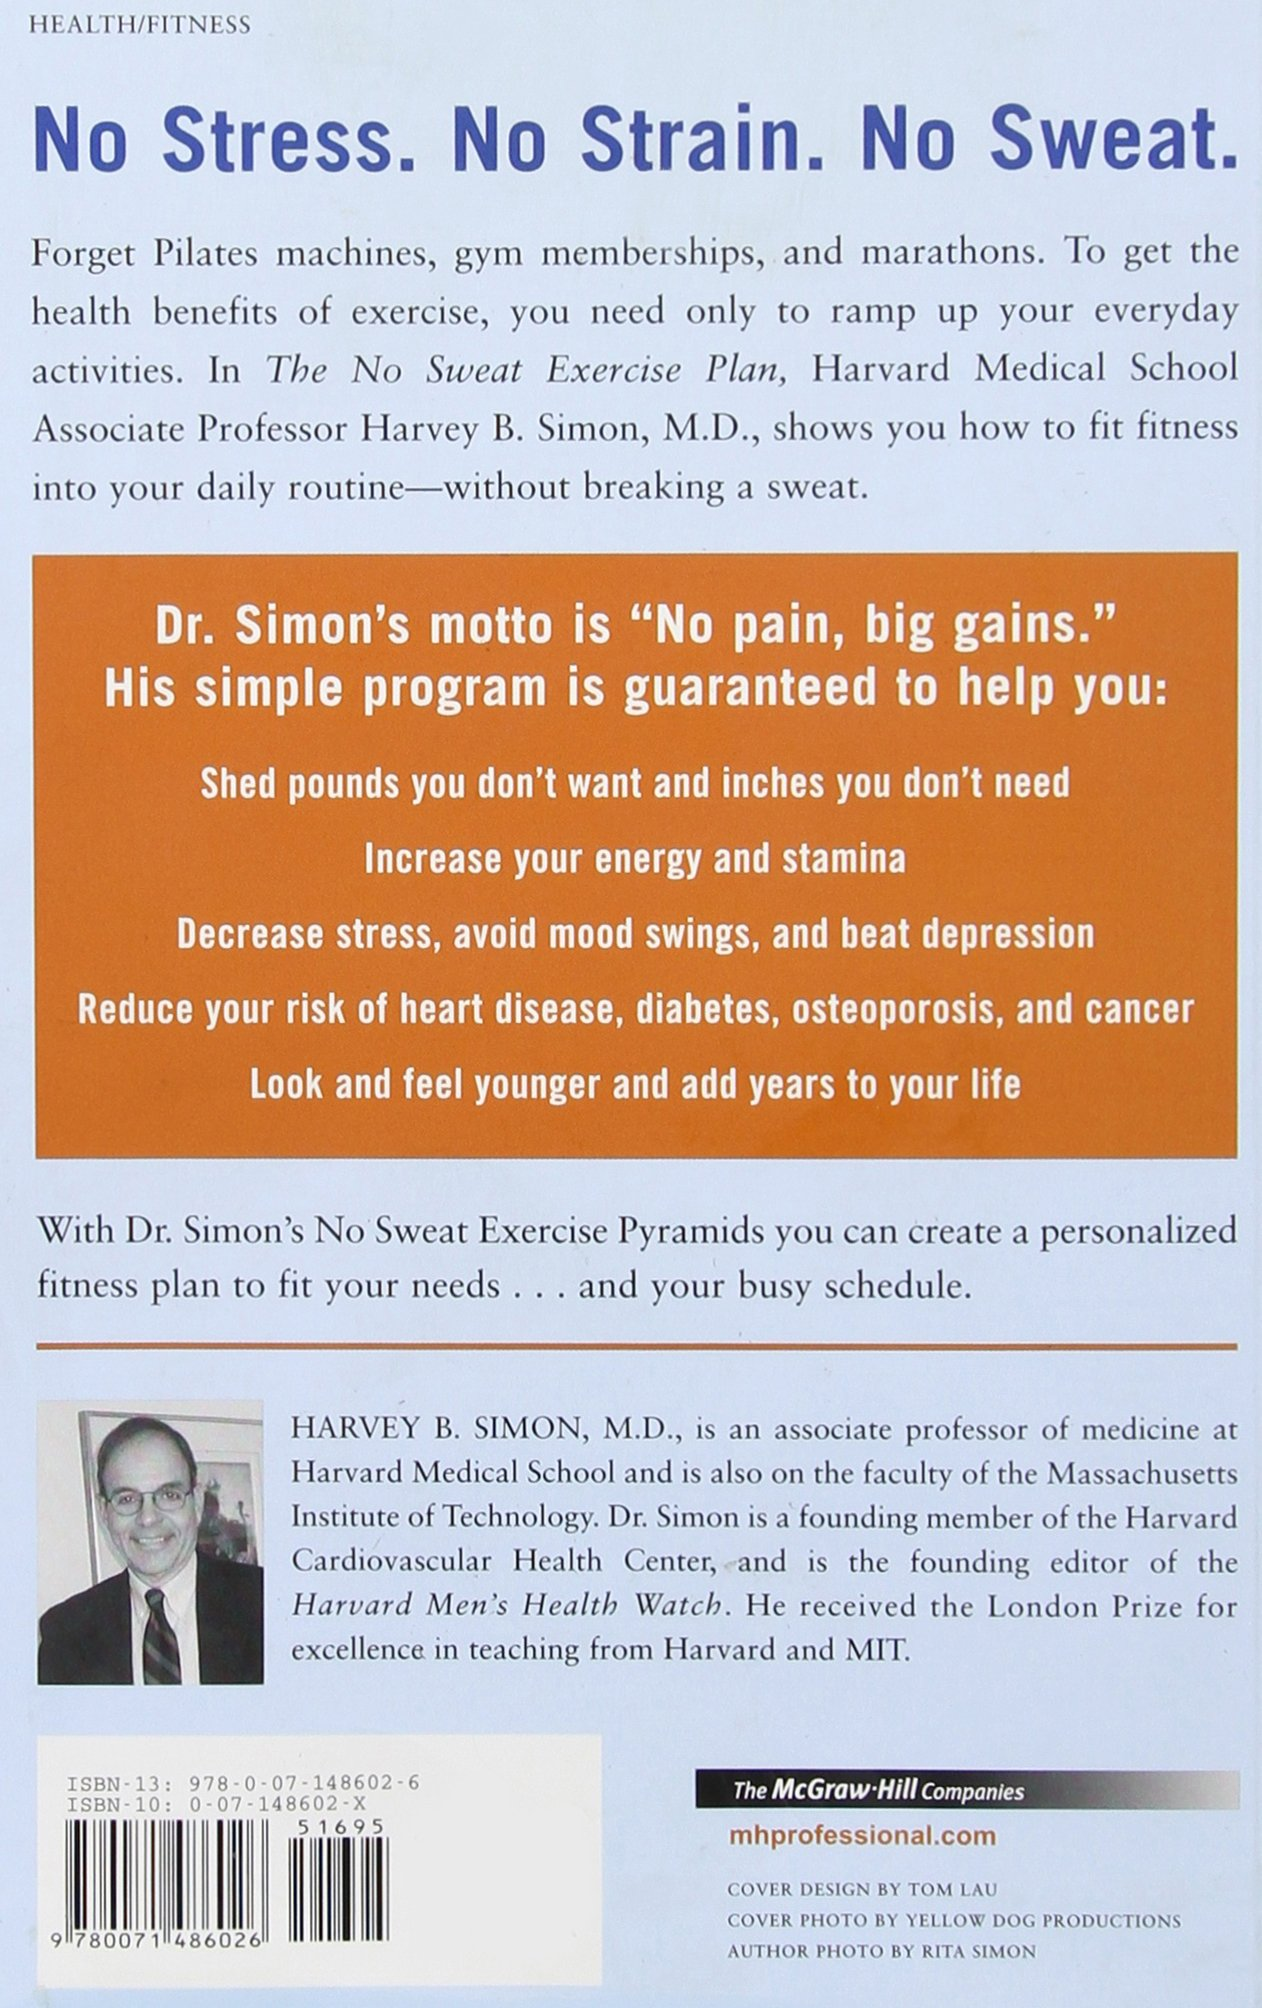 The No Sweat Exercise Plan Lose Weight Get Healthy And Live Longer Harvard Medical School Guides Amazon Books